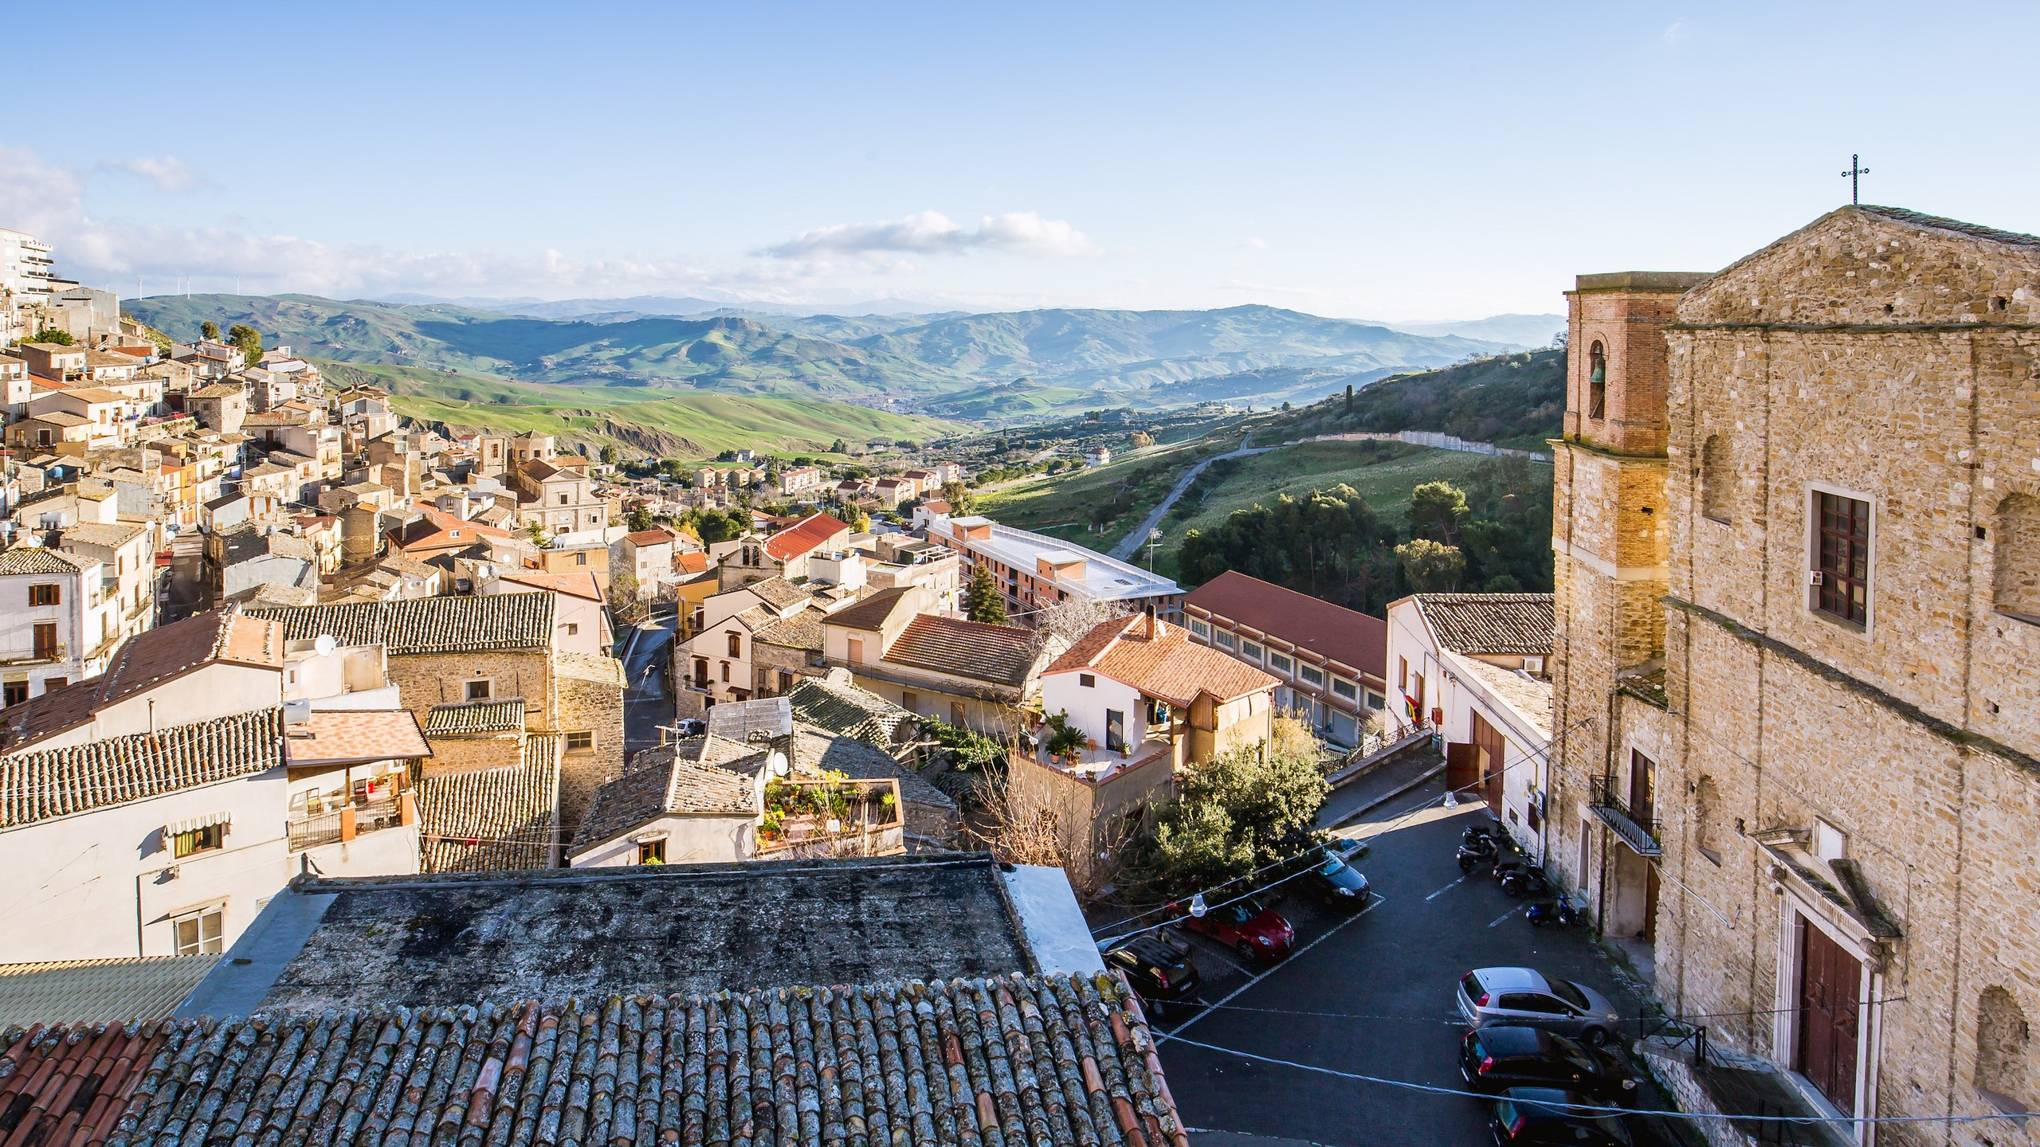 A charming Sicilian town is giving away free houses